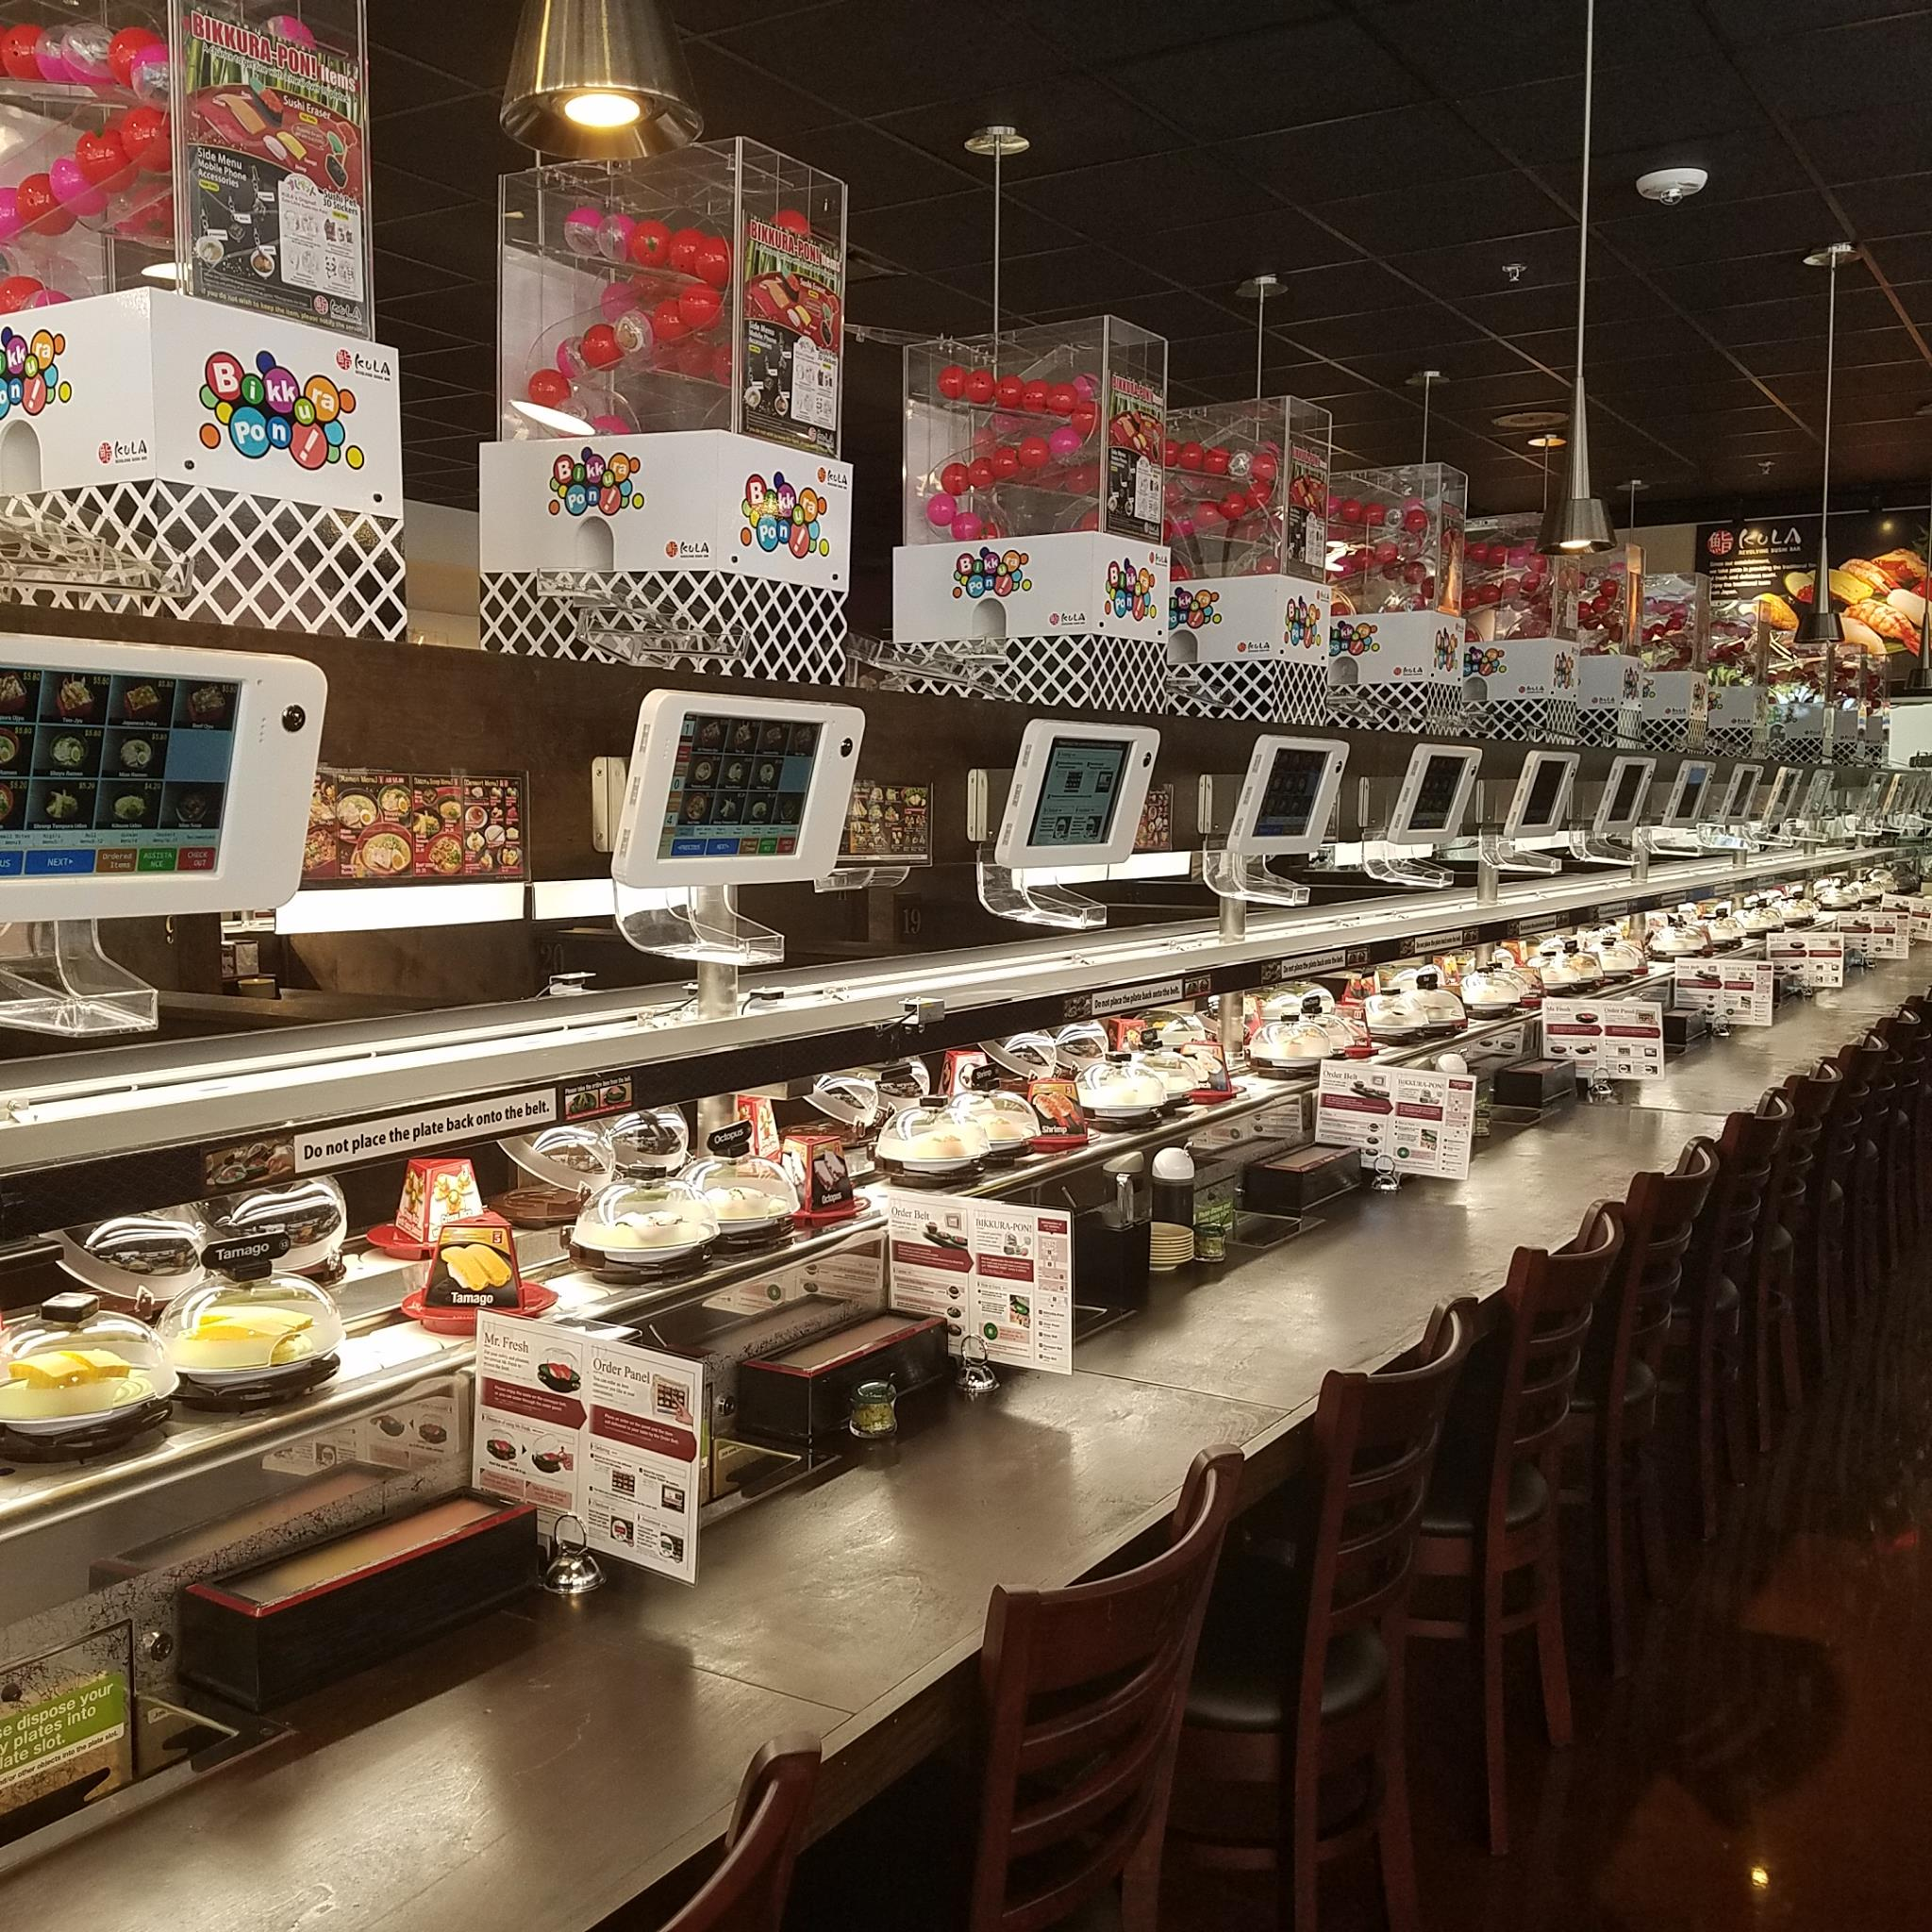 Restaurants With Sushi And Other Food